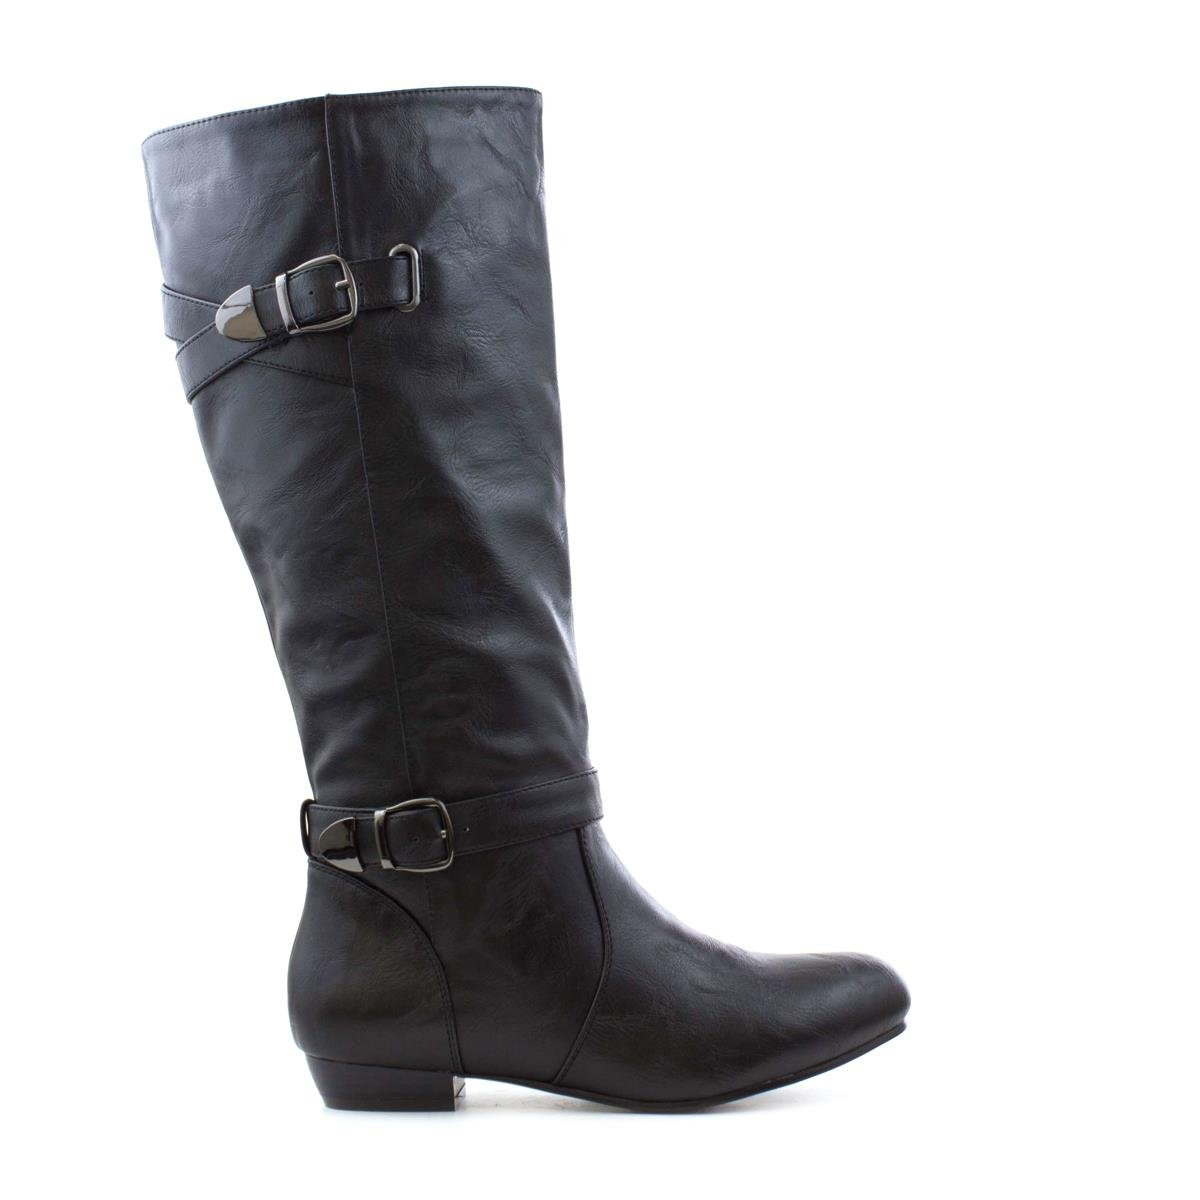 photo Womens Lilley High Leg Boot with Silver Chain-18207 modern collection